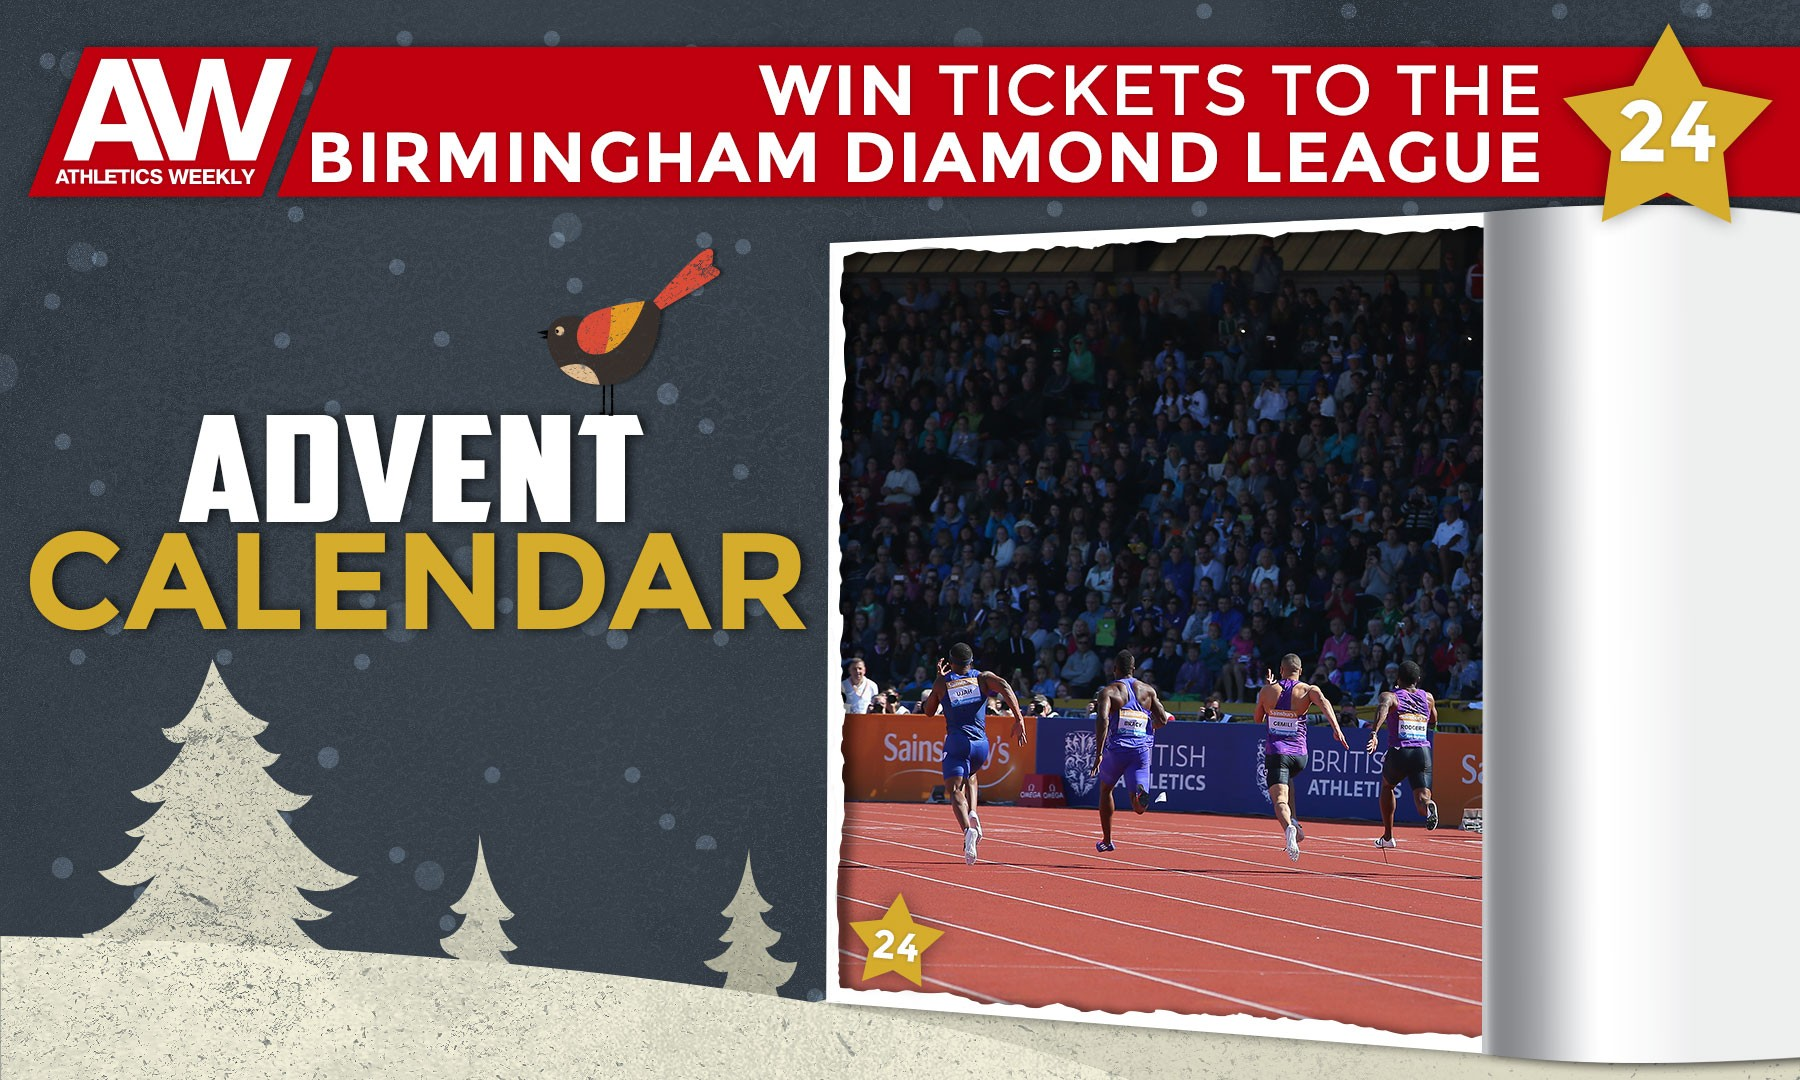 Win Birmingham Diamond League tickets